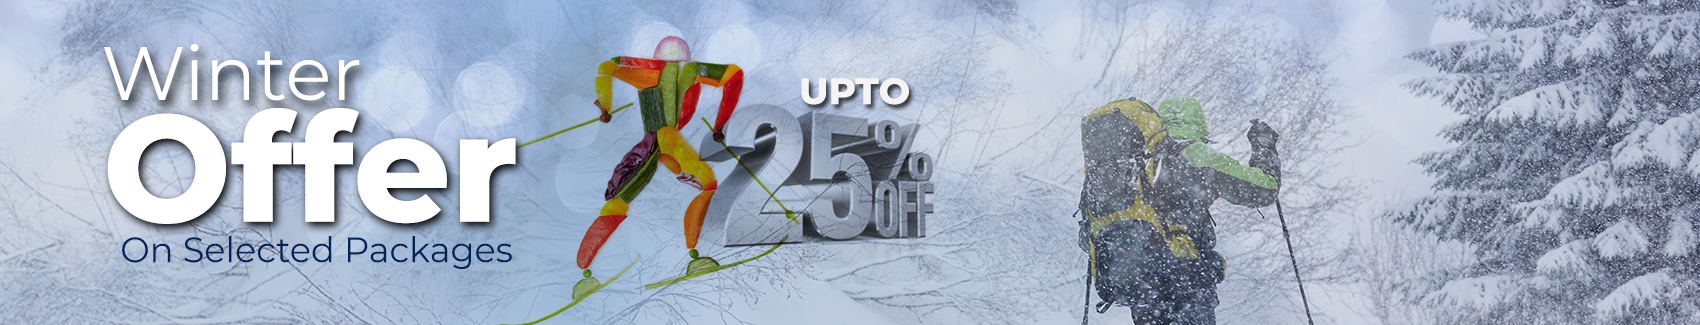 MDG Winter Offer upto25% Discount on Garden packages